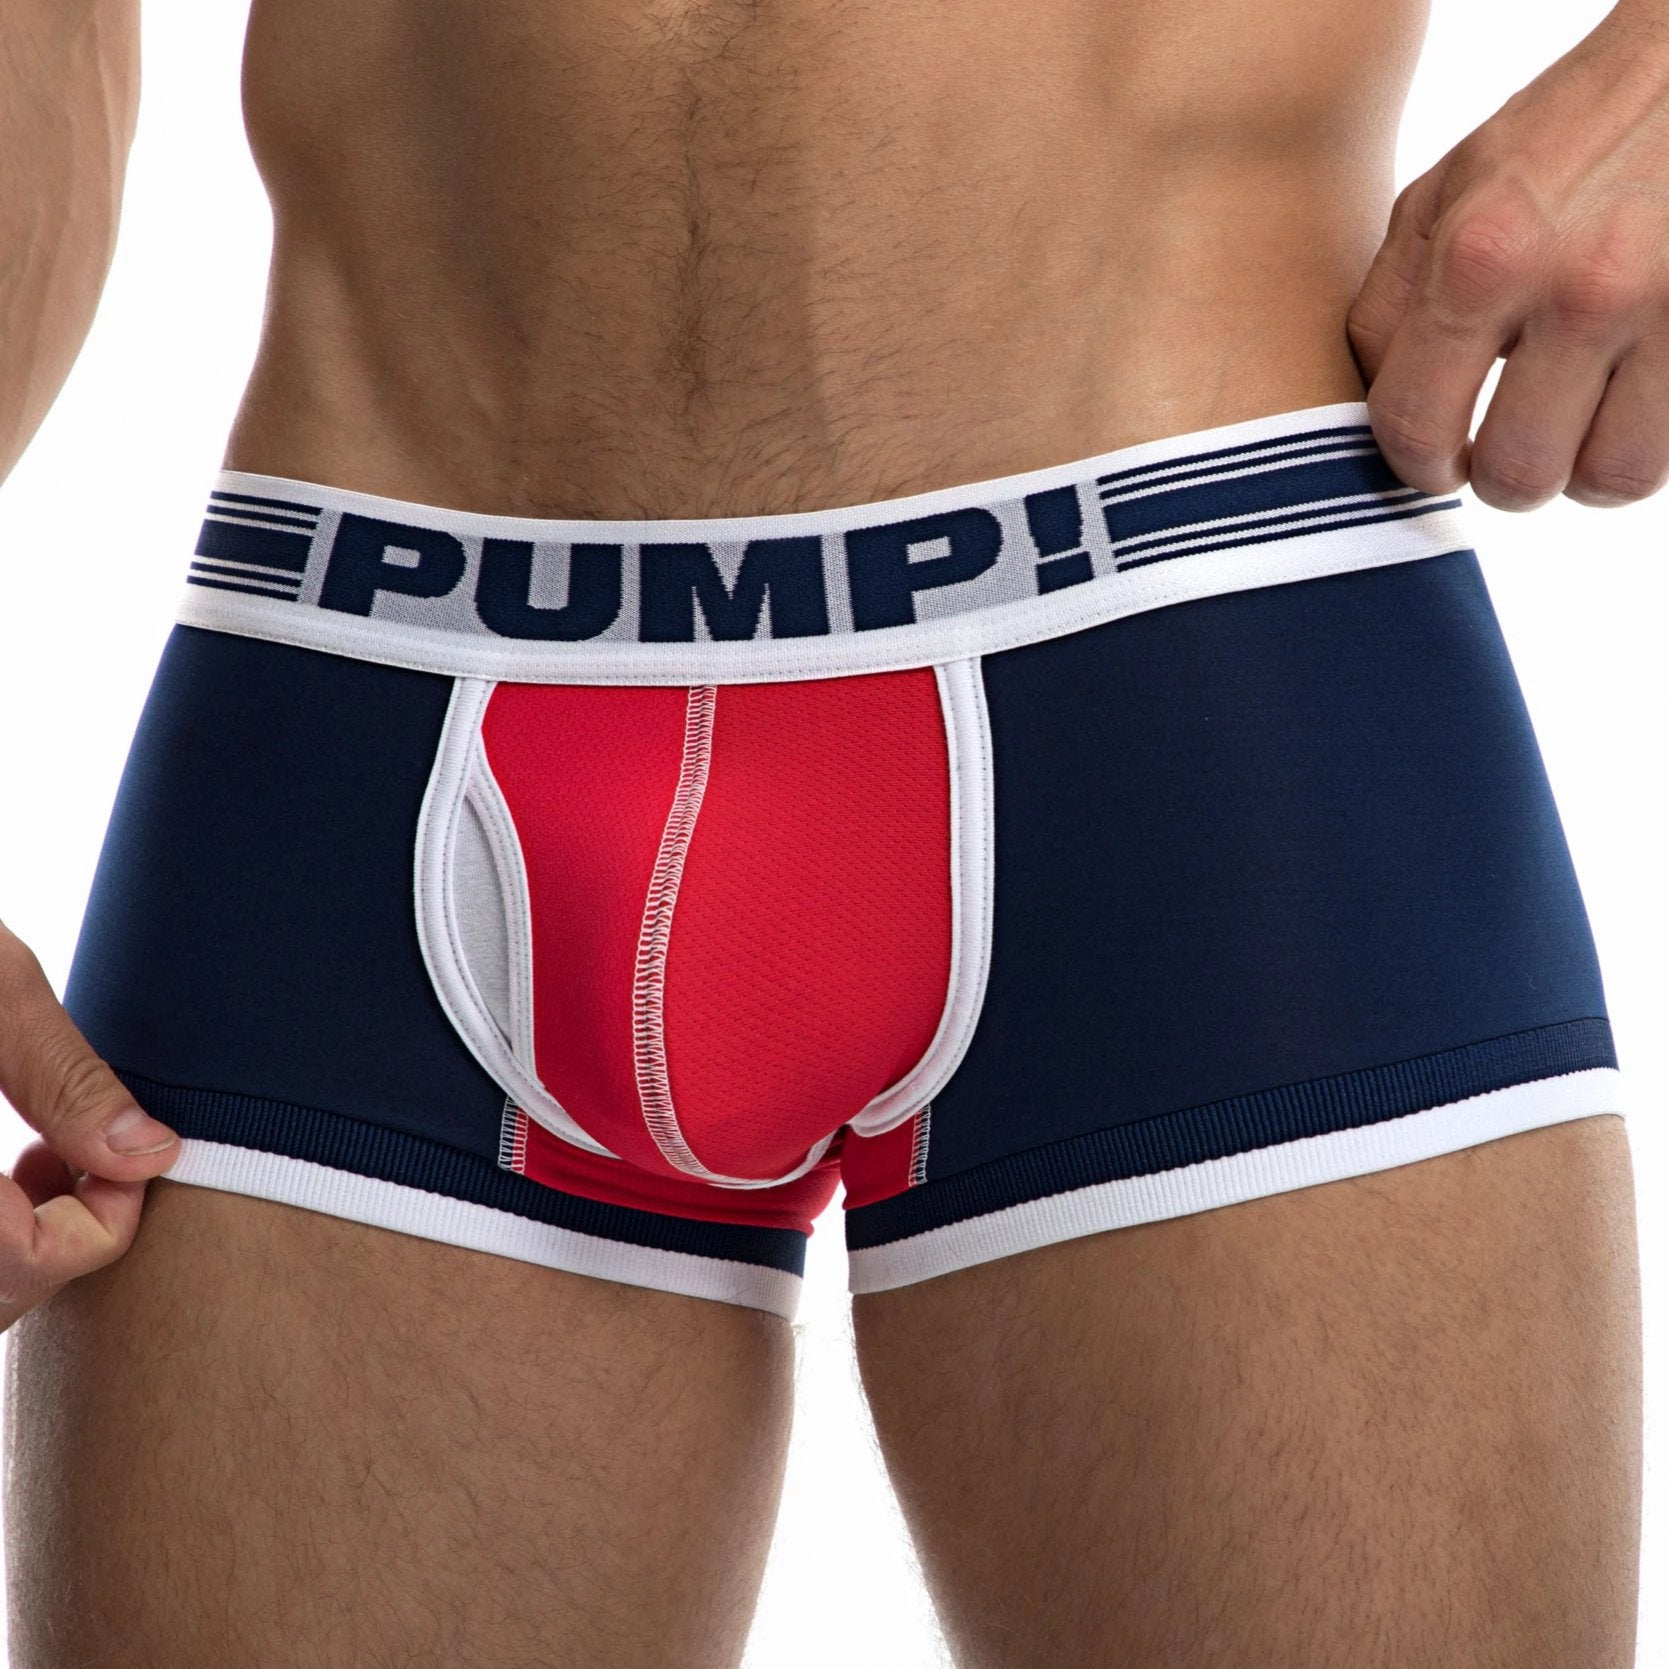 Touchdown Academy Boxer Front by PUMP! Underwear at Trenderwear.com